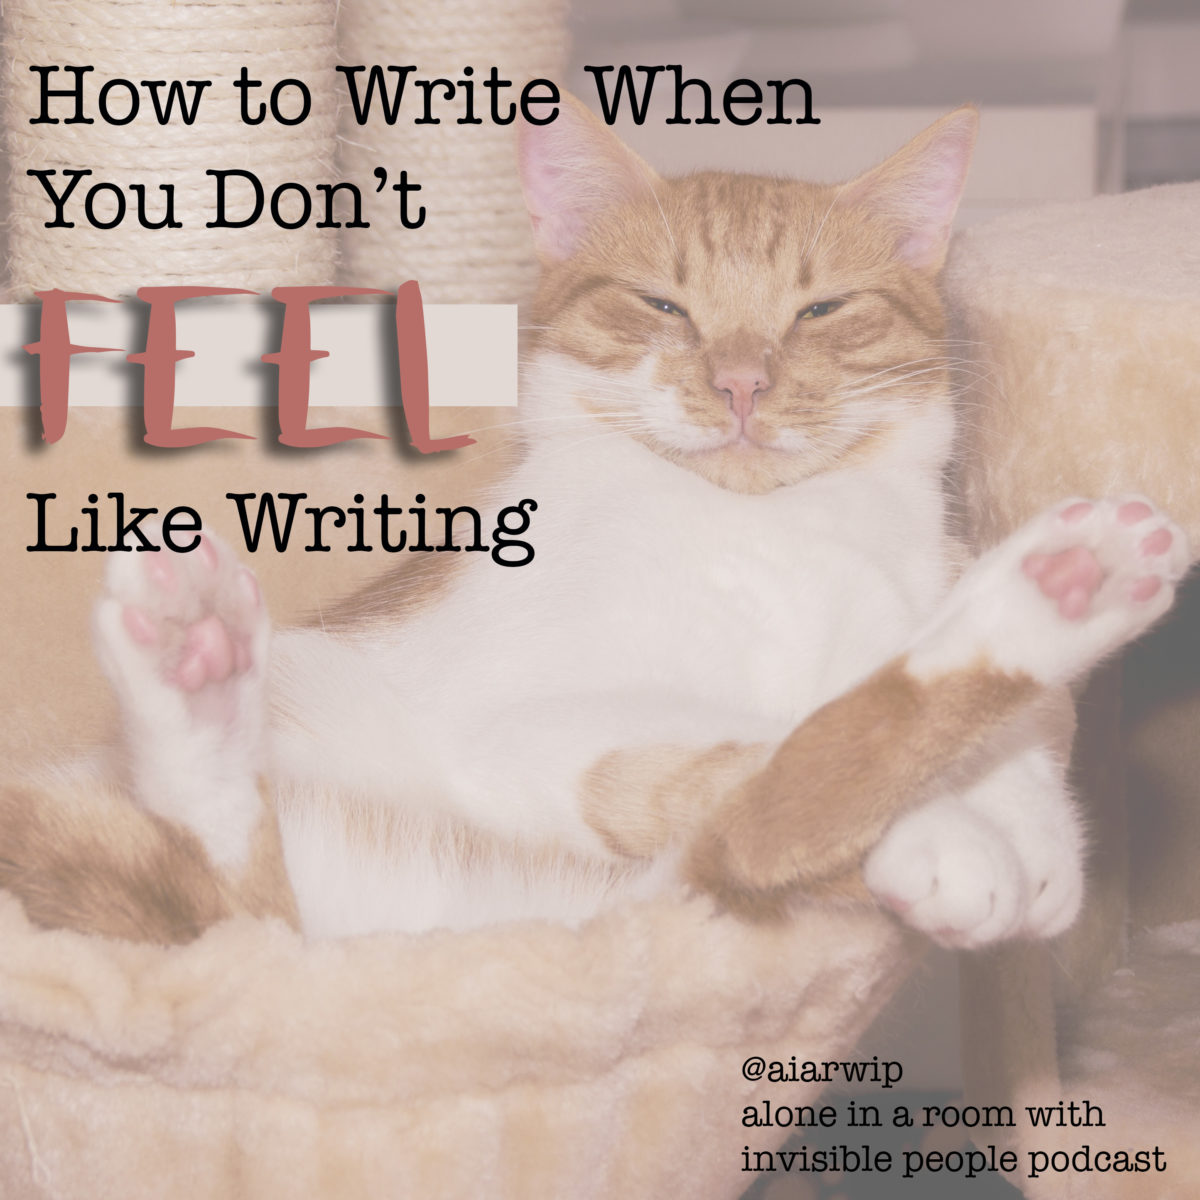 Episode 36: How to Write When You Don't Feel Like Writing